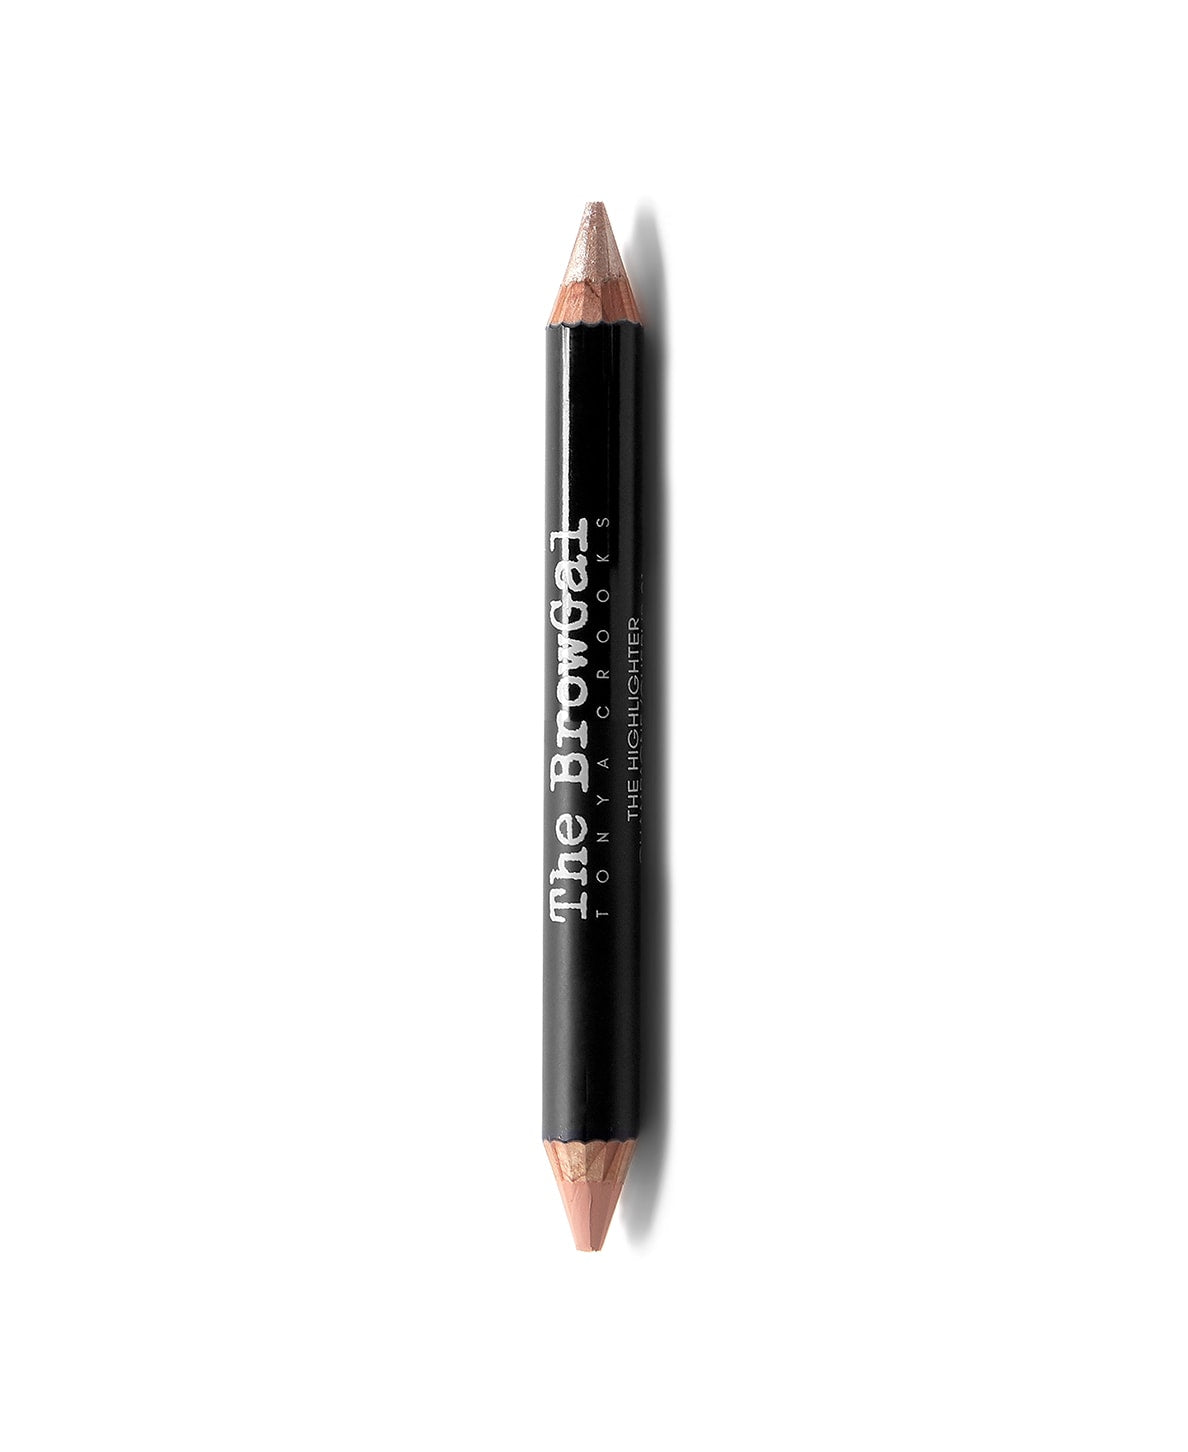 The BrowGal Highlighter/Concealer Duo Pencils